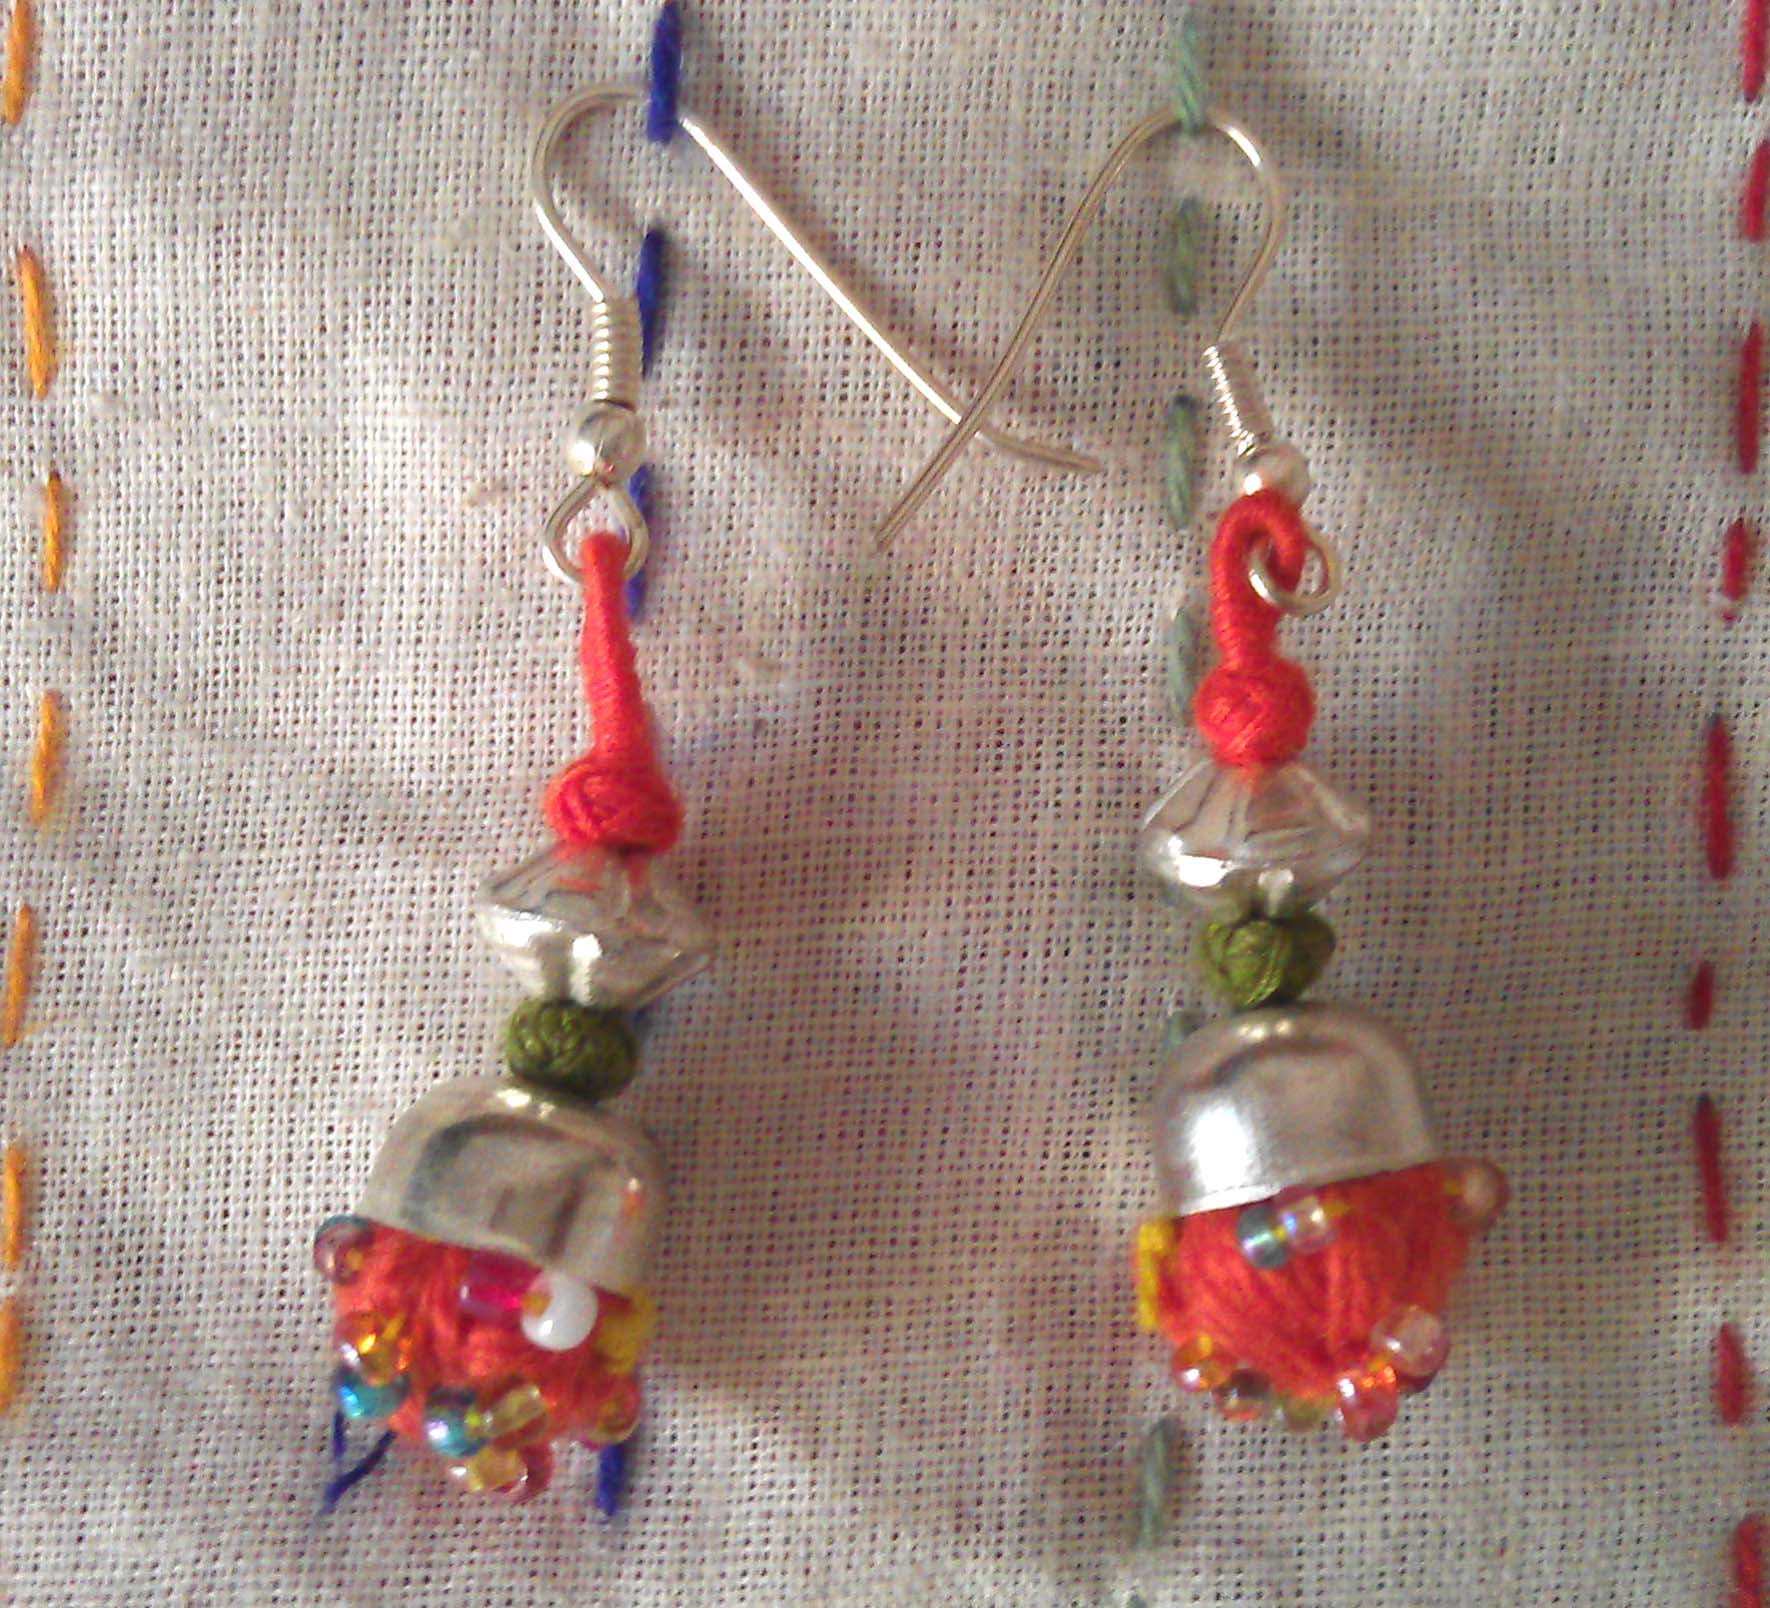 shikha clearance sale work earring products sold earrings on lamba s new wire